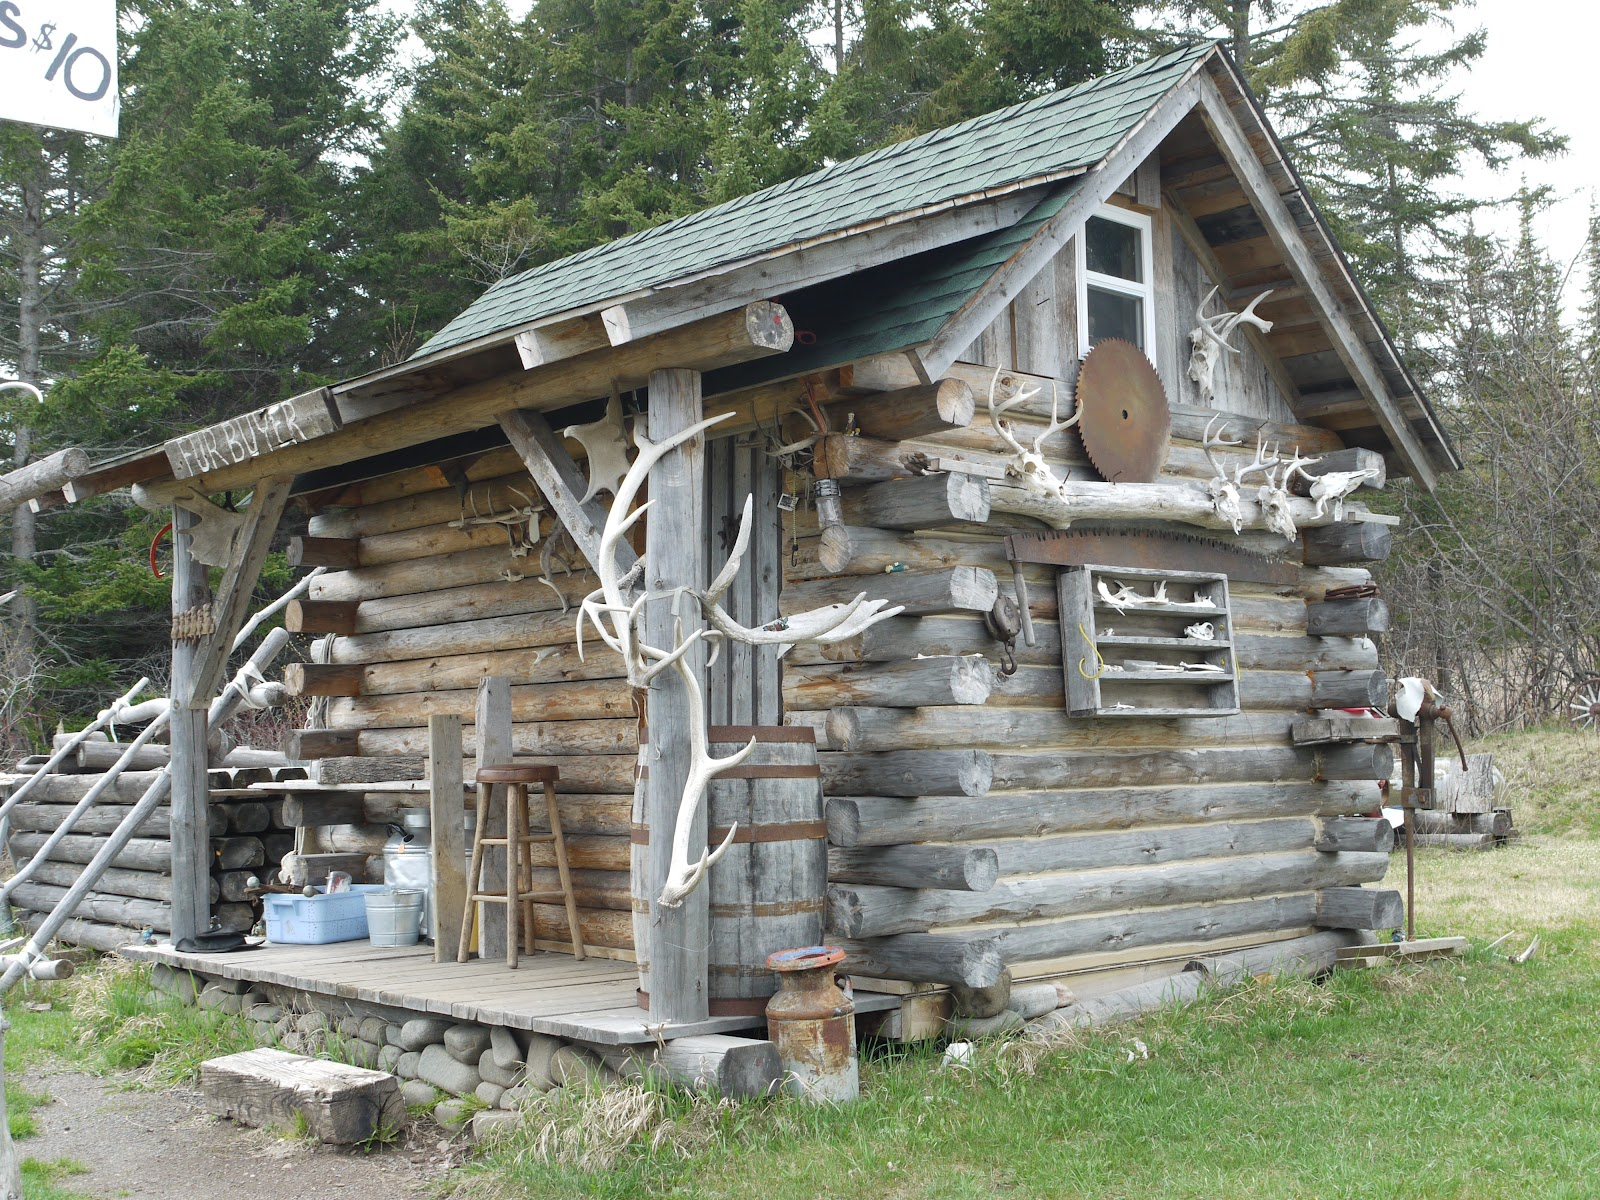 1000 images about rustic cabin on pinterest old cabins for Rustic log cabin homes